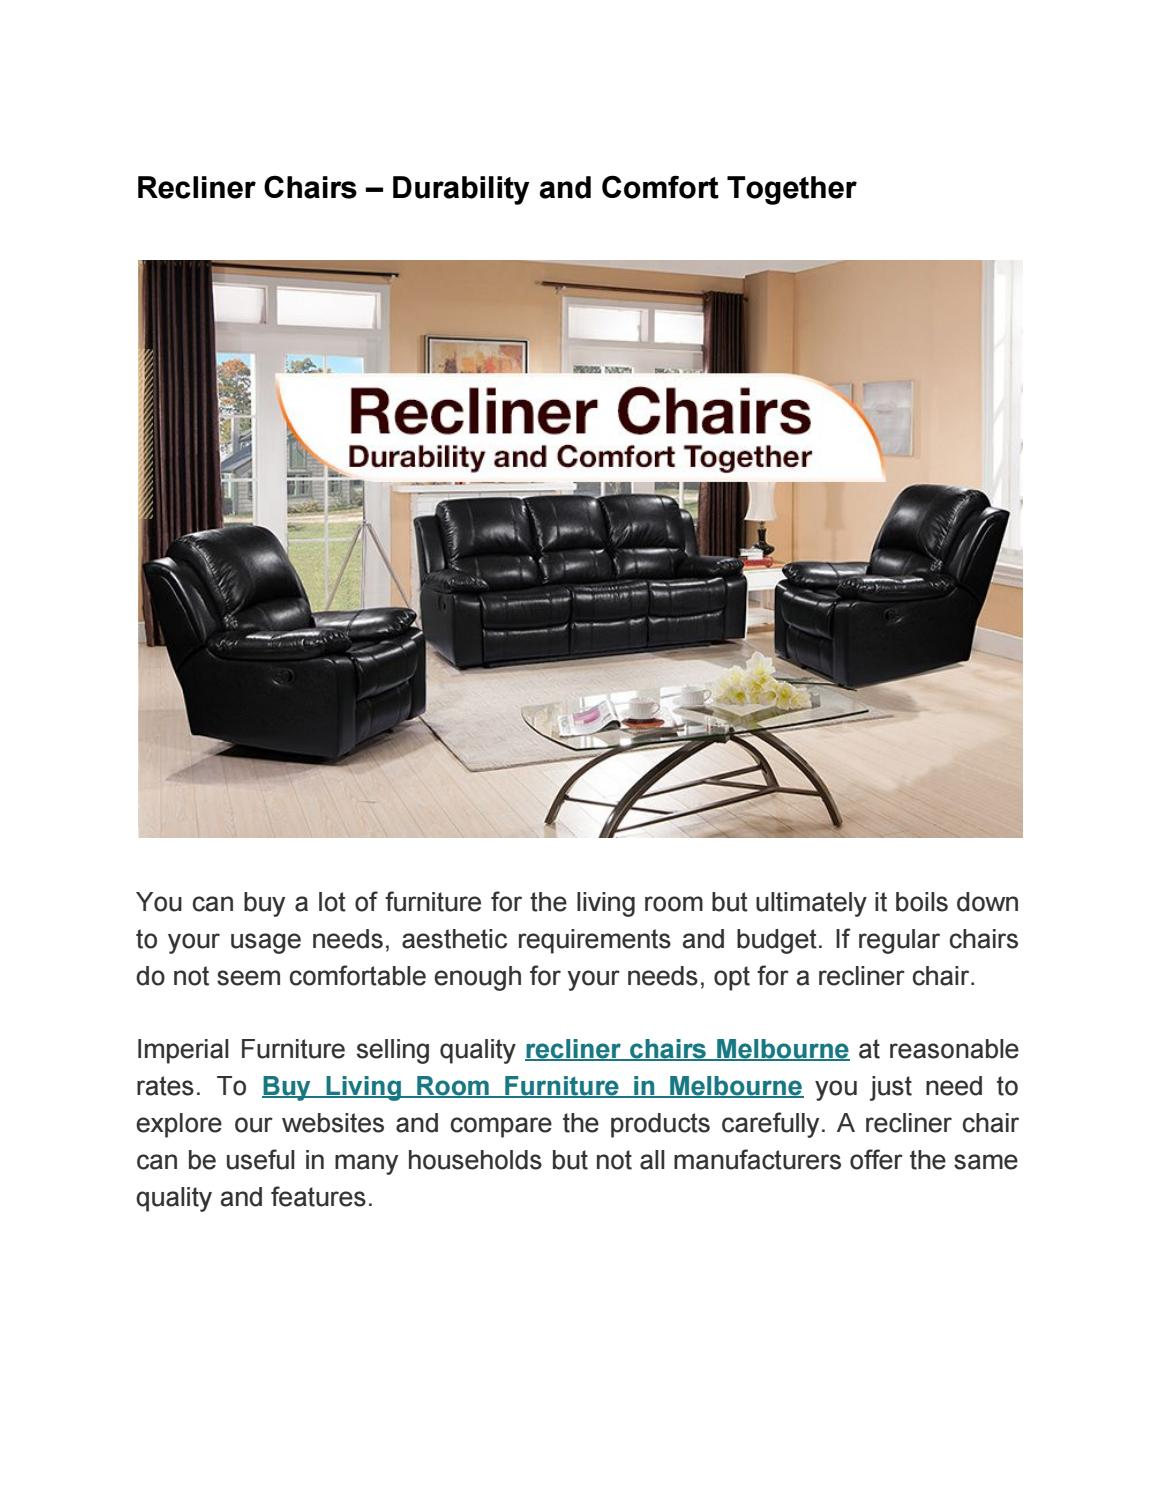 Recliner Chairs Durability And Comfort Together By Adamspwilliam Issuu